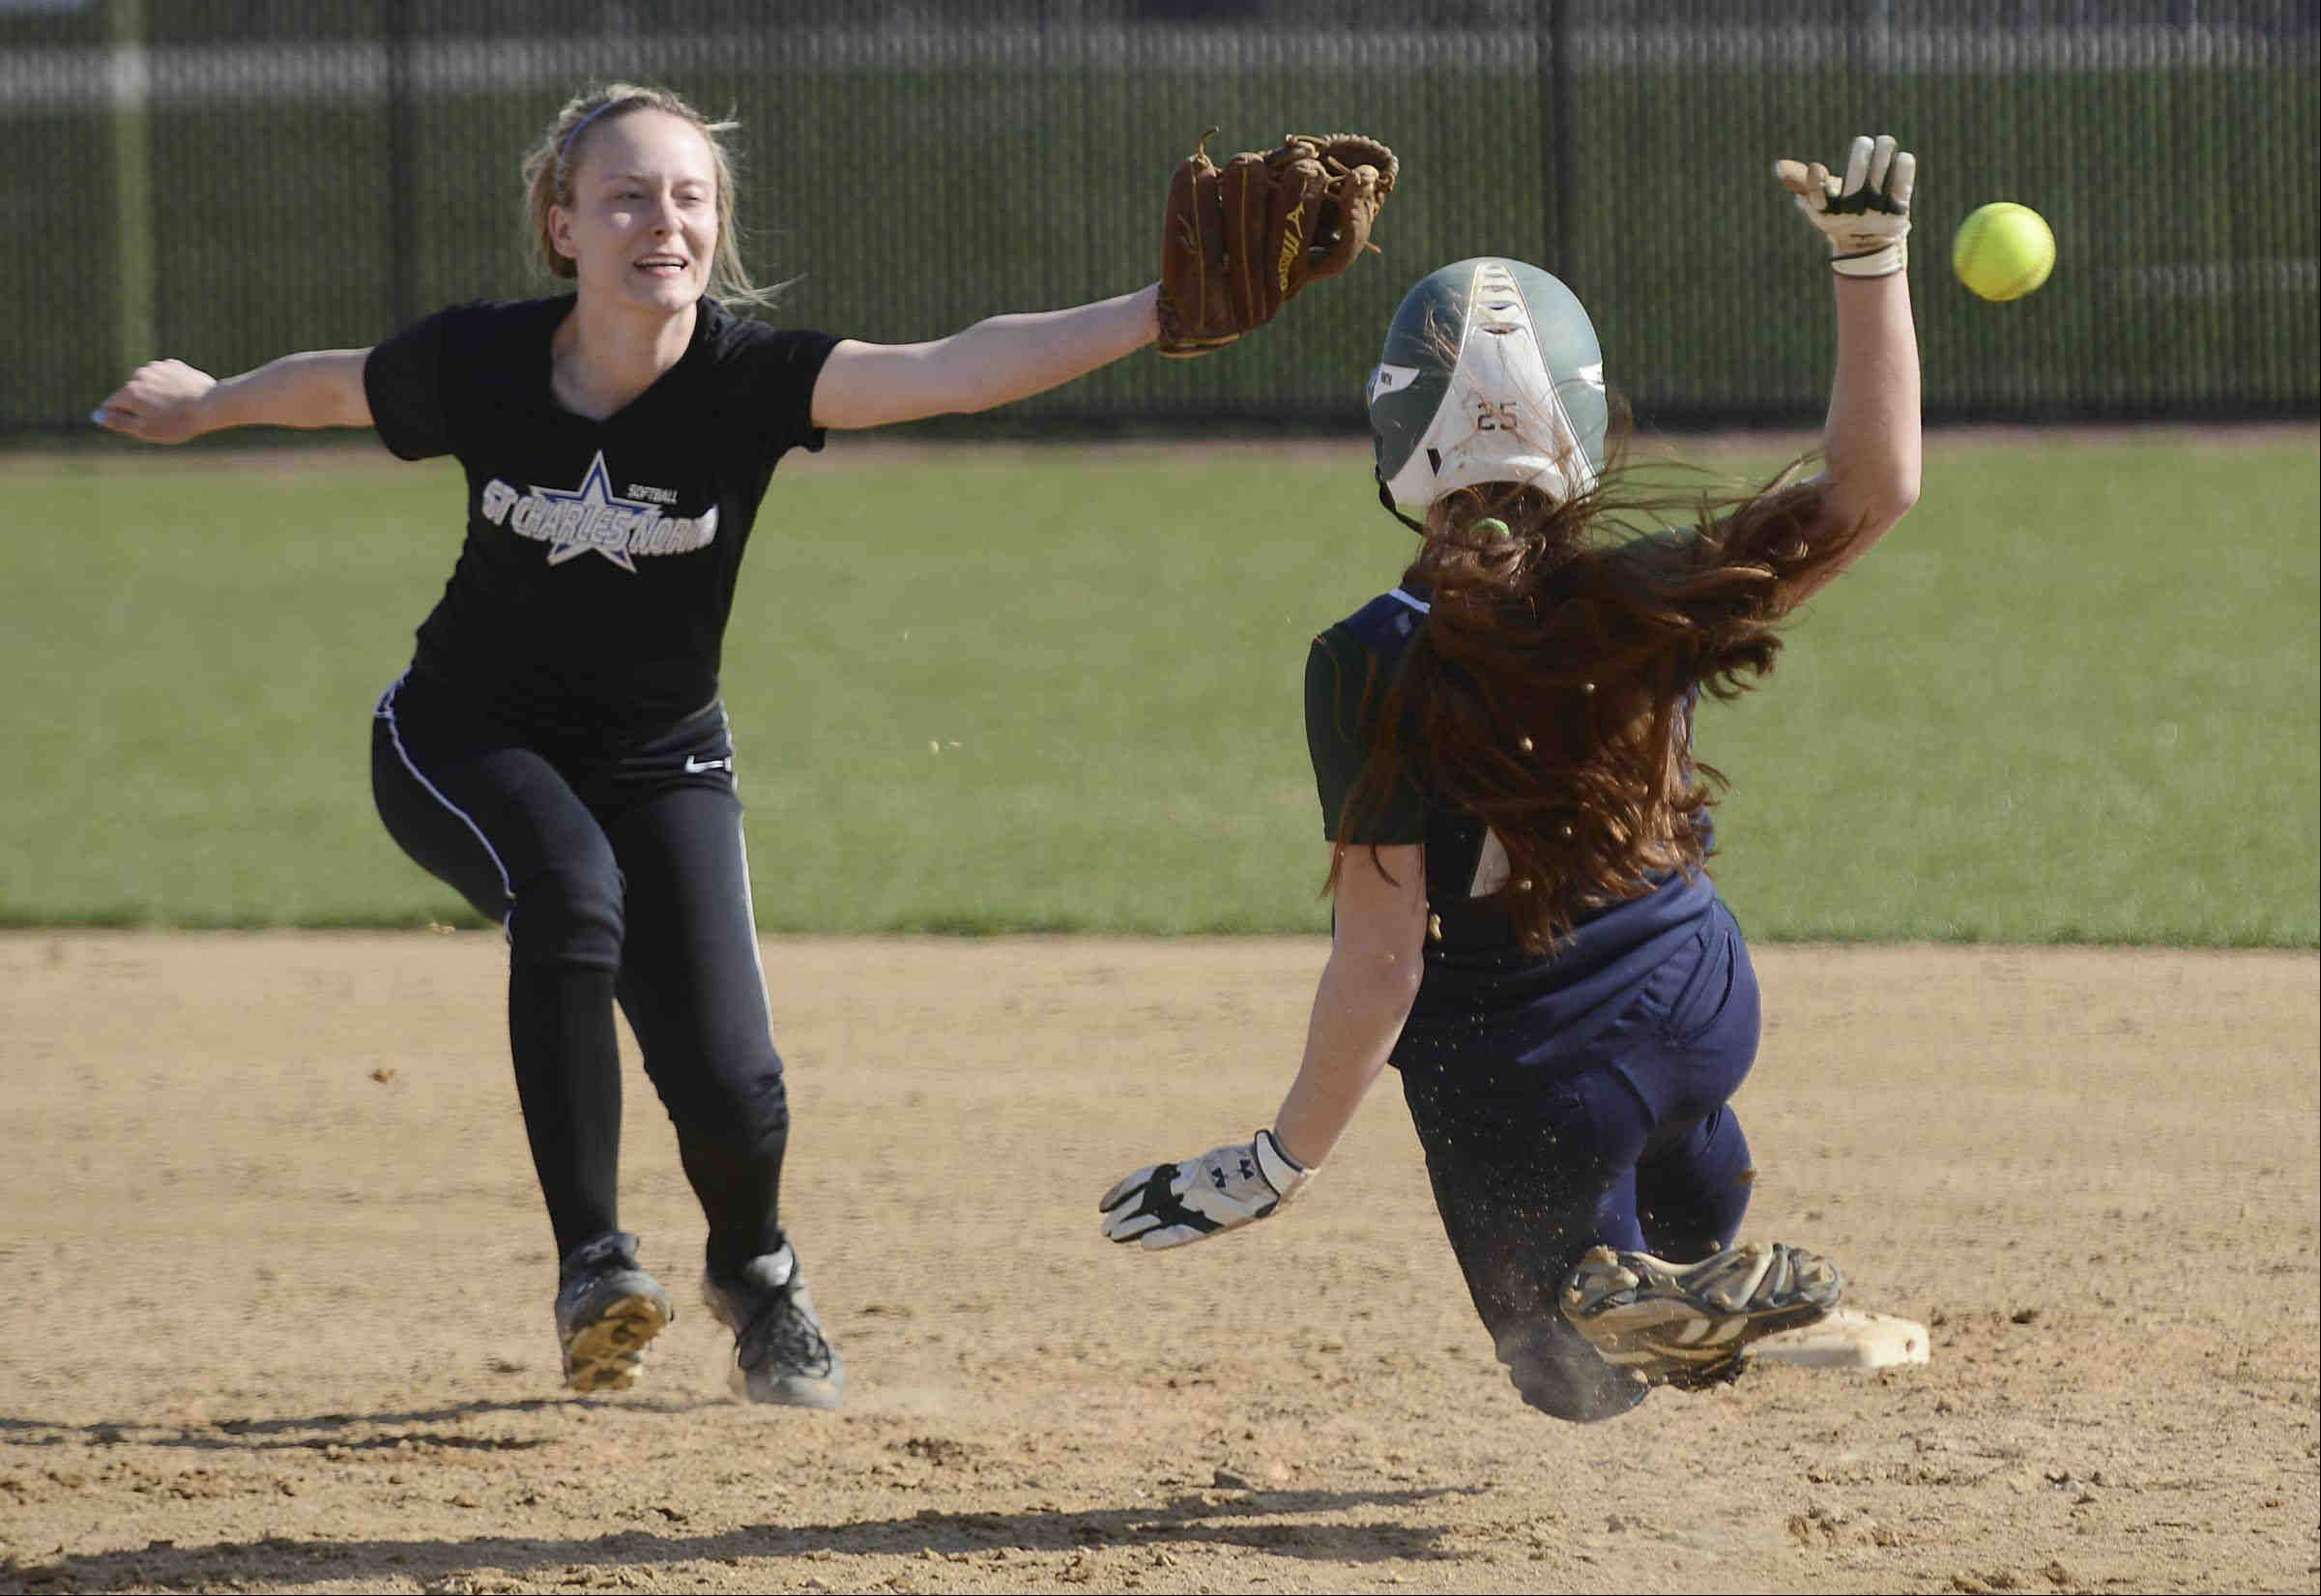 St. Charles North's Mickey Goetz can't reach a wide throw as Bartlett's Kayla Haberstich steals second base Monday in St. Charles.